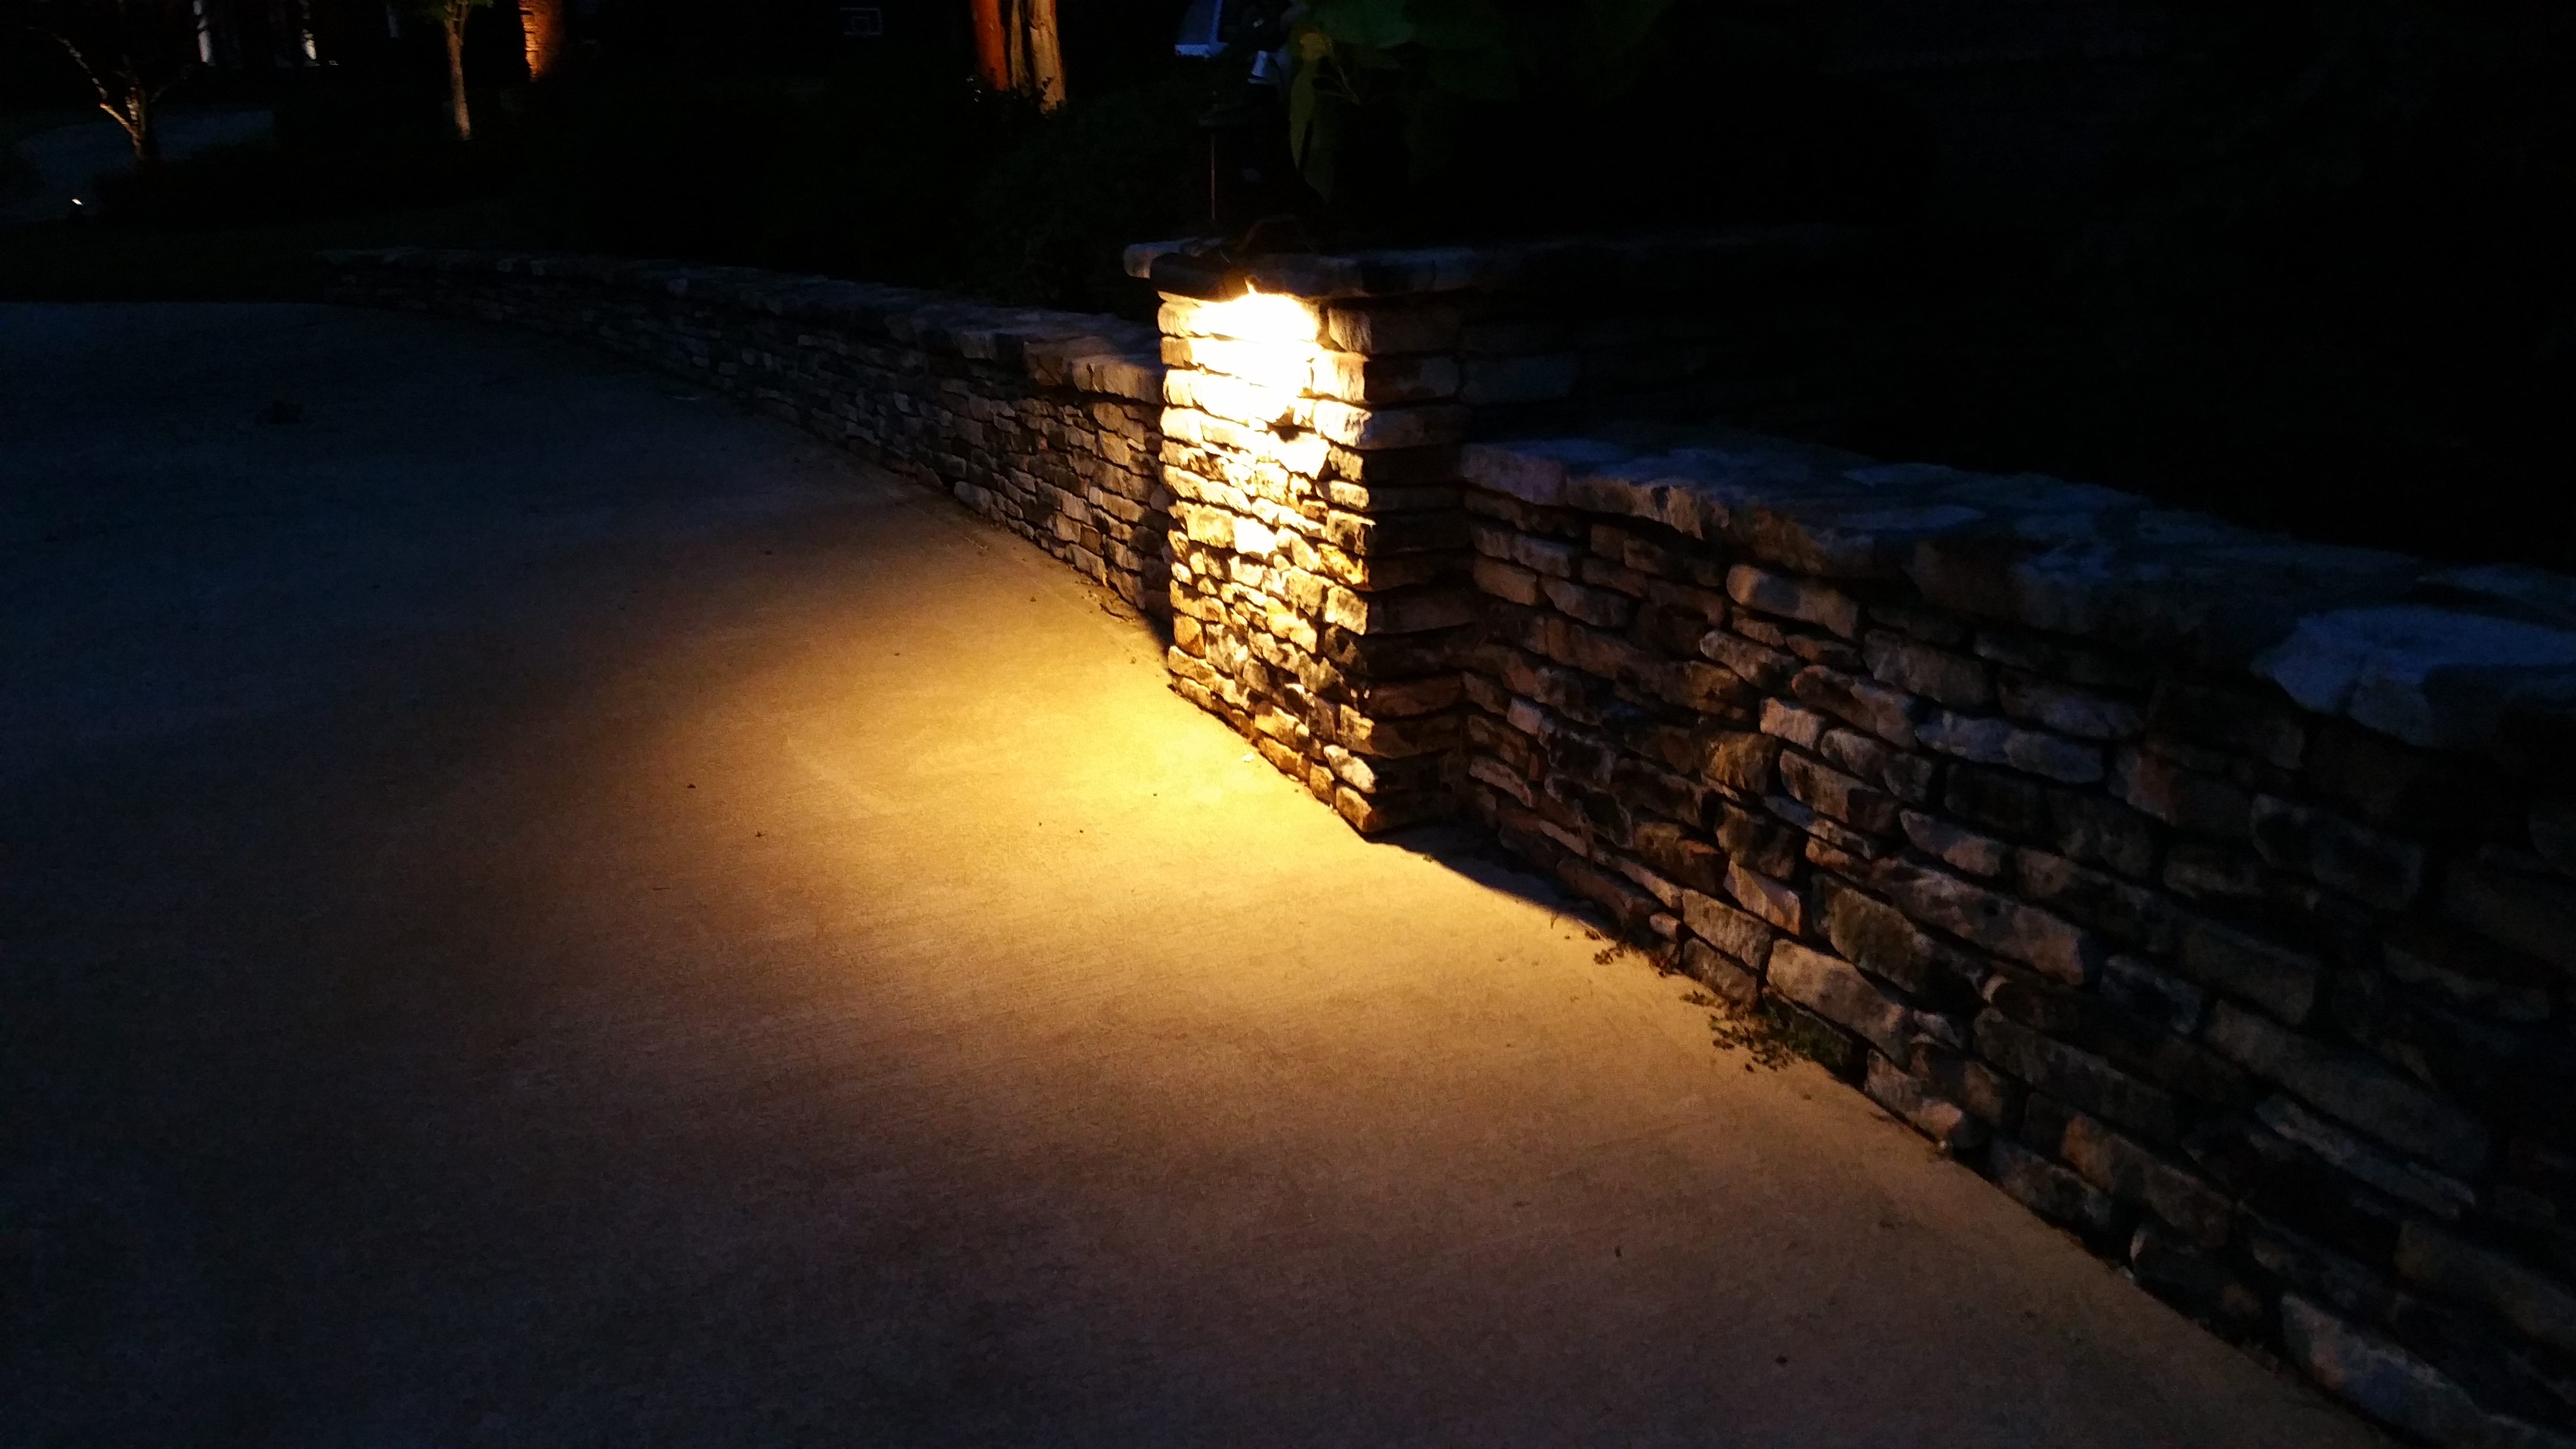 Stacked Stone, Natural Stone & Pavers: Seattle Outdoor Lighting to on halloween home decorations, halloween props, halloween haunted house ideas, haunted house lighting, diy yard lighting, iron wall lighting, halloween homemade scary decorations, halloween board ideas, farm yard lighting, halloween led lights, decorative yard lighting,